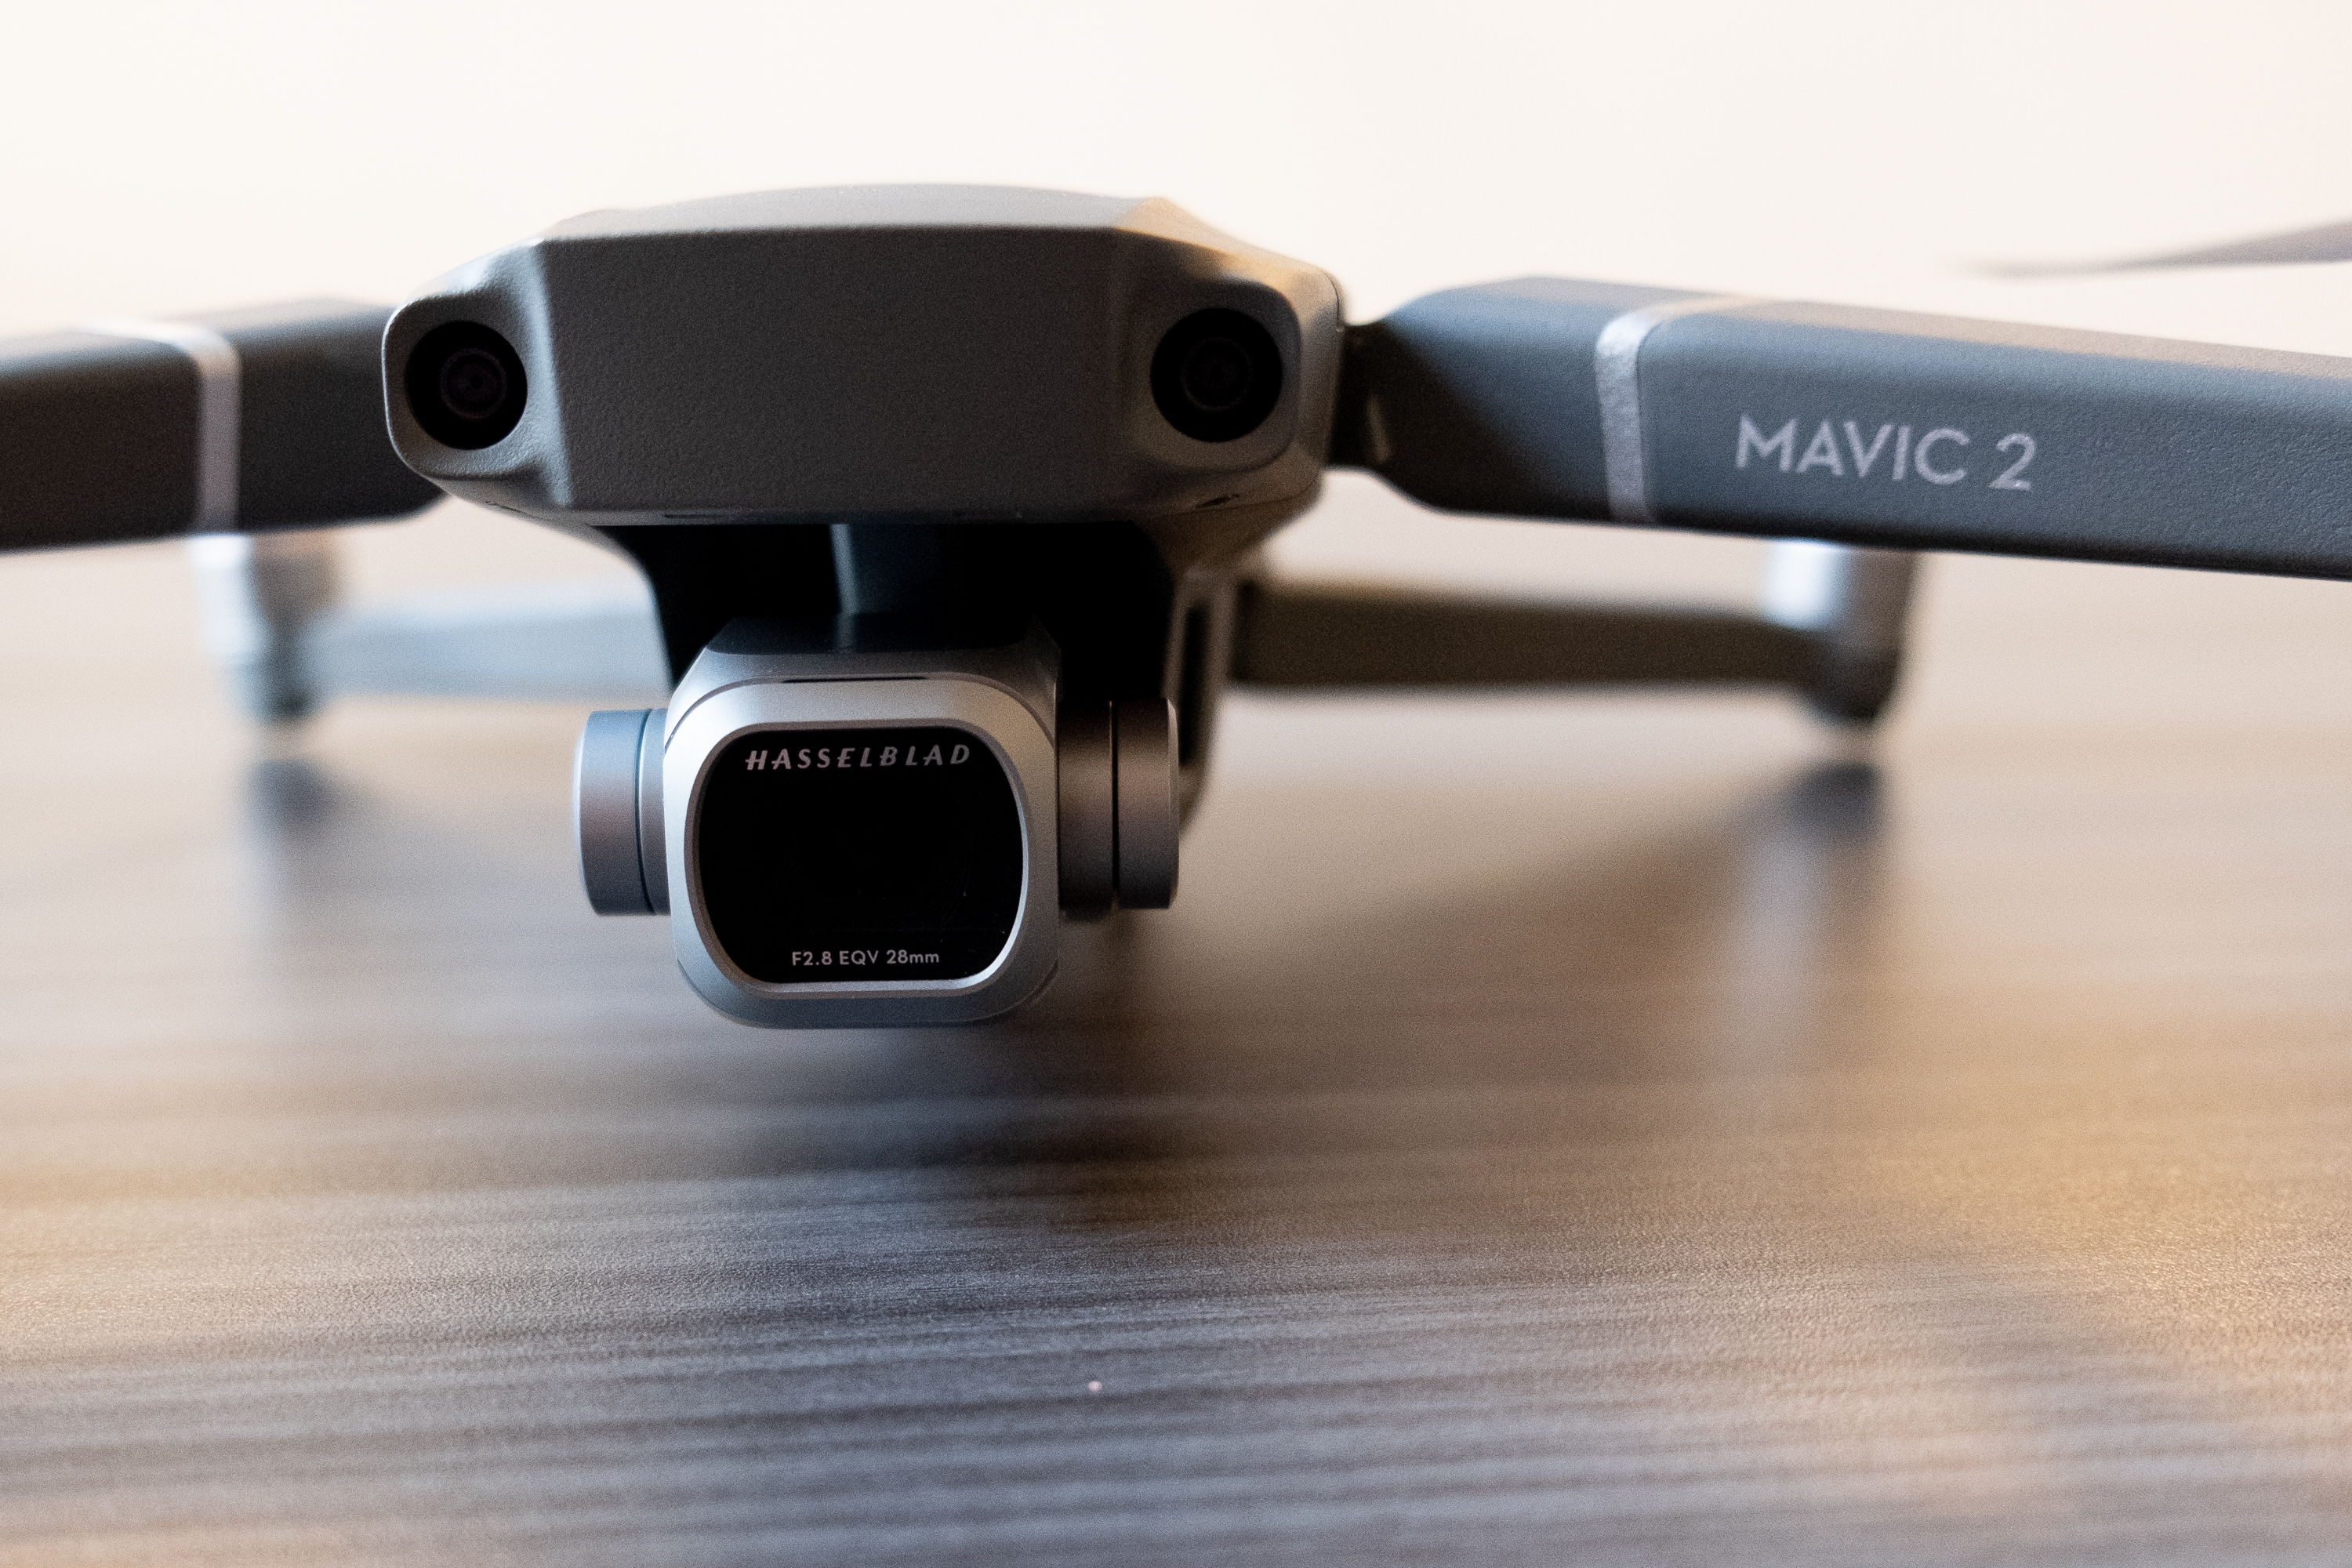 What you need to know about DJI's new Mavic 2 series drones – My